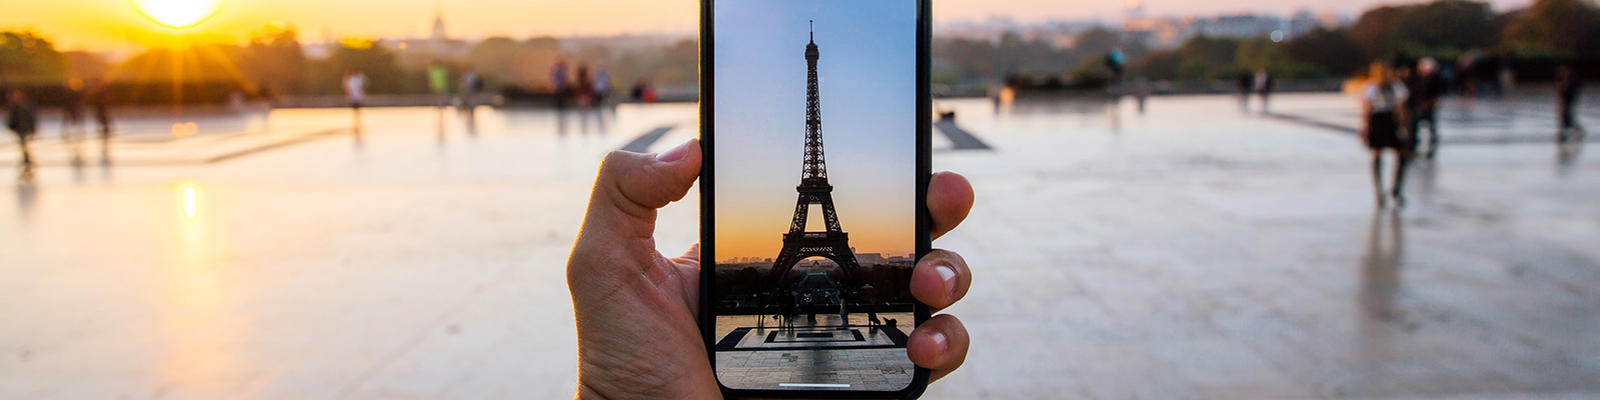 Mobile phone image of Eiffel Tower